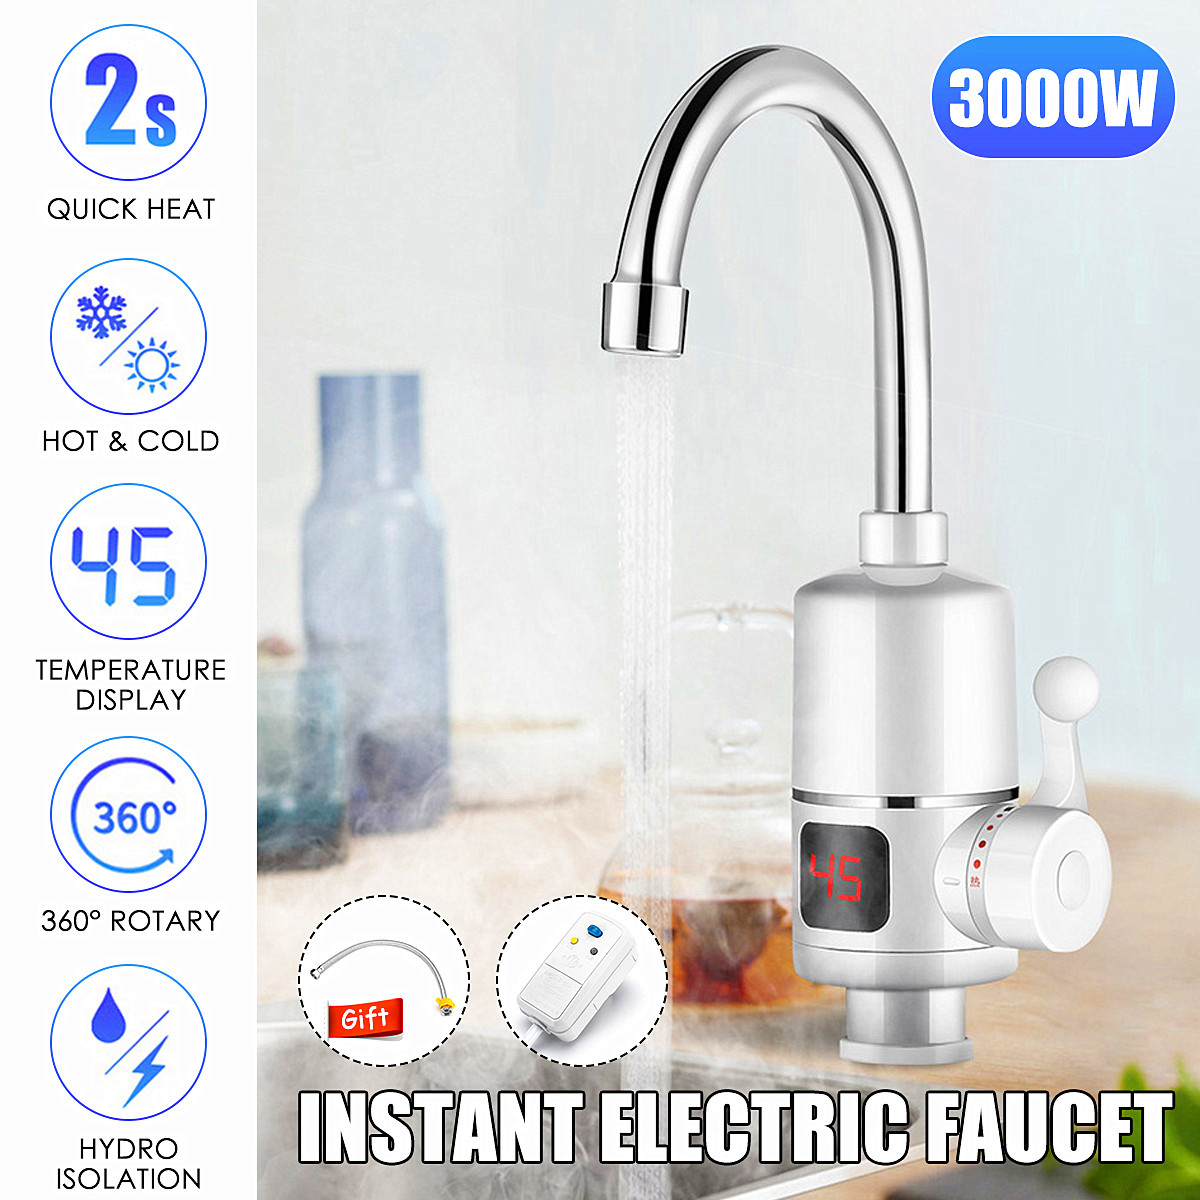 Instant Hot Water Heater Tap Fast Instantaneous Thermostat   3KW Electrical Faucet Temperature Display With Leakage Protections